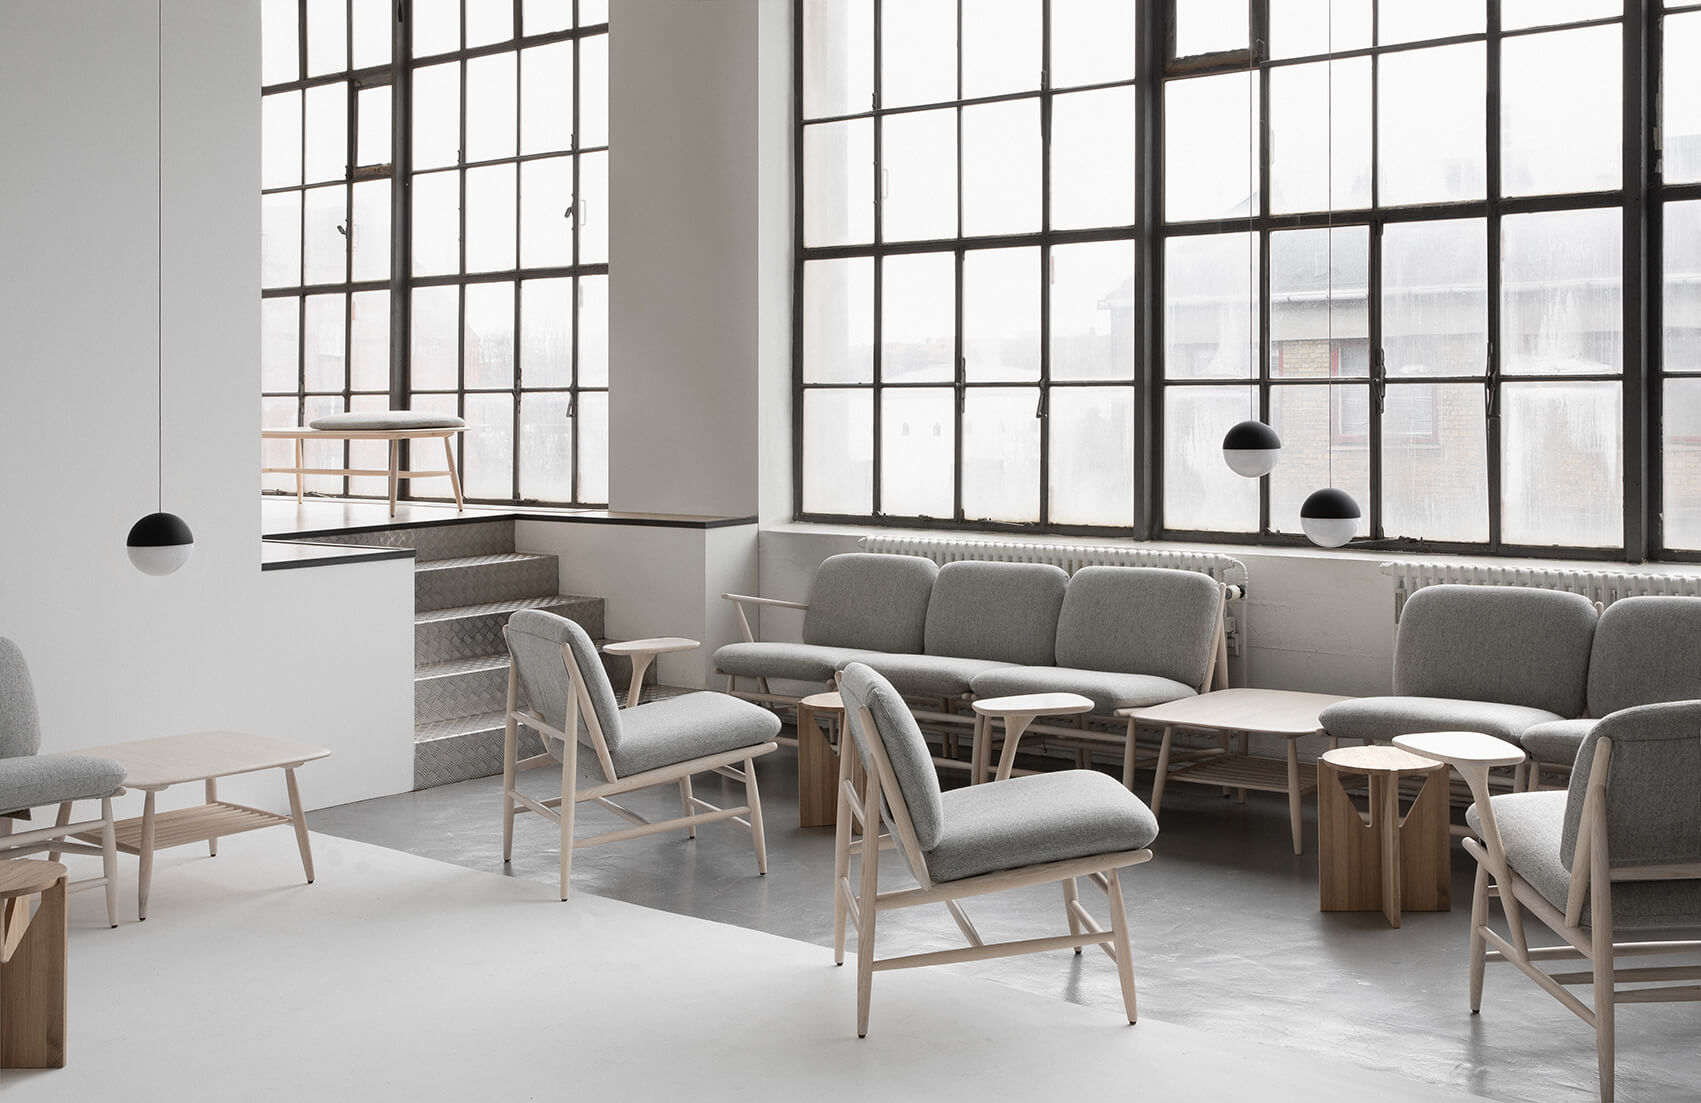 Ercol 'Von' Furniture Range by Hlynur Atlason